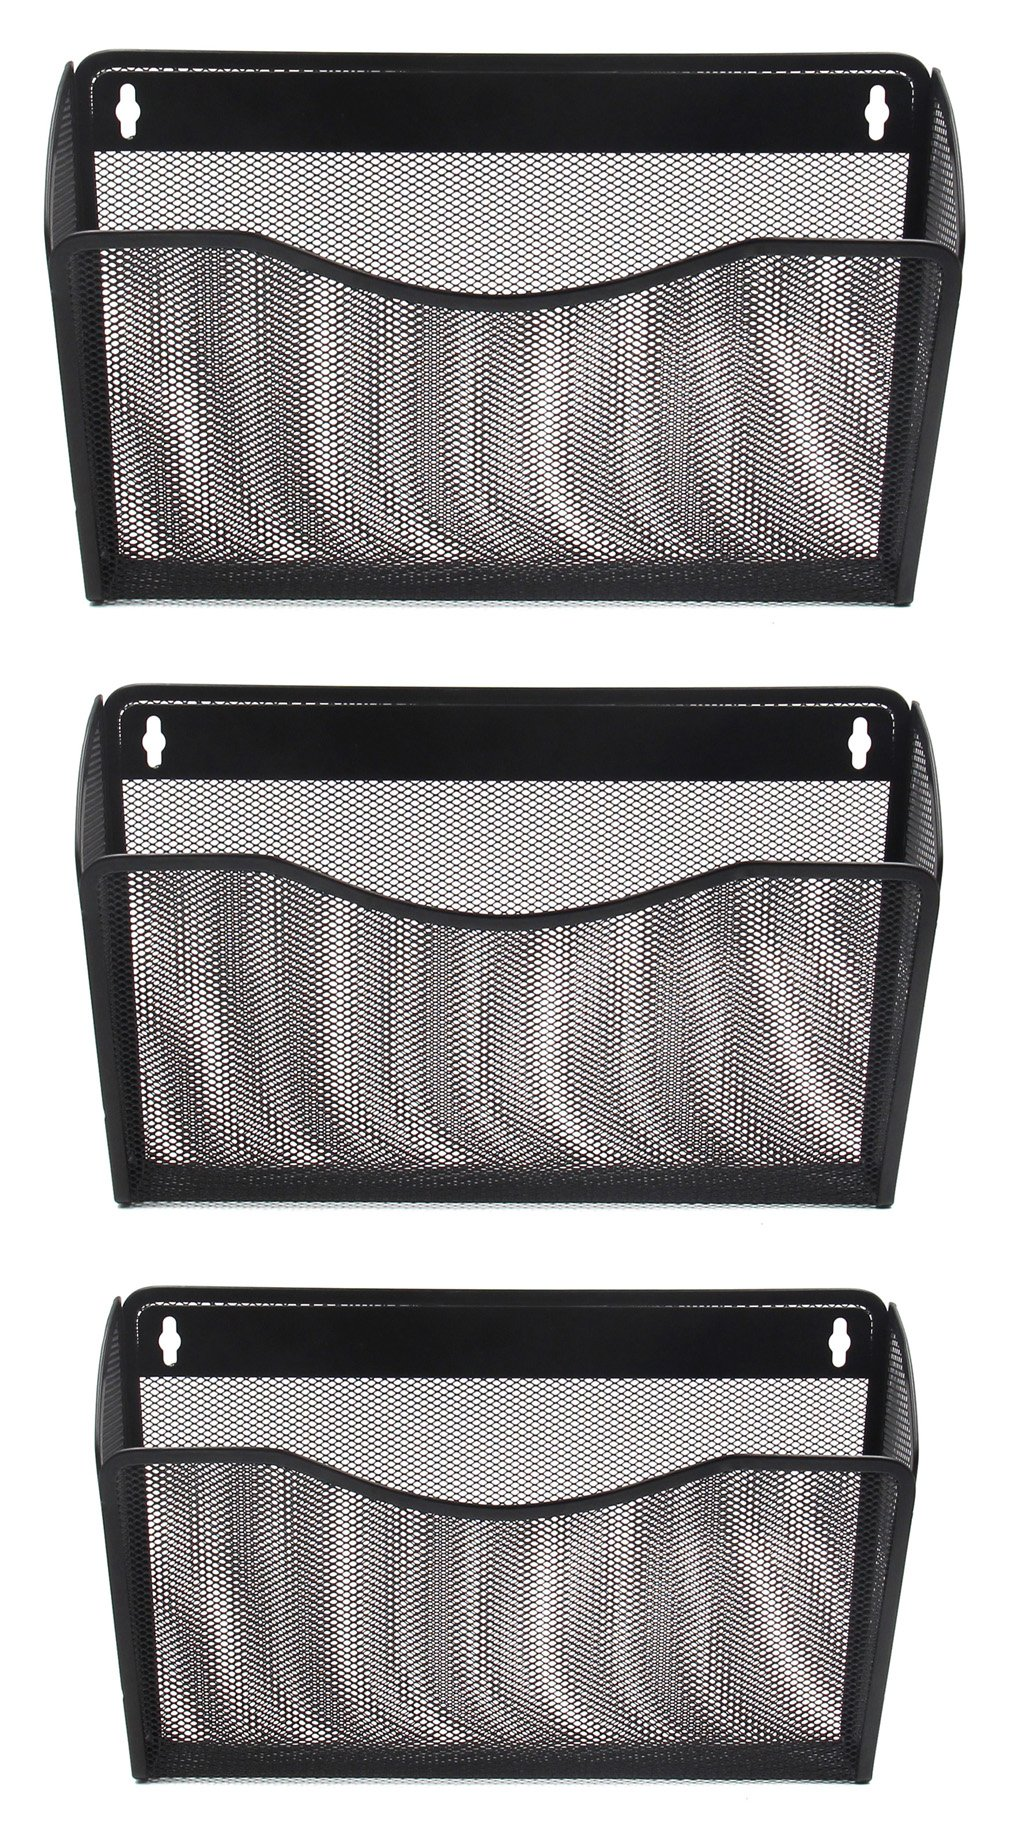 EasyPAG 3 Pocket Office Mesh Collection Wall File Holder Organizer,Black